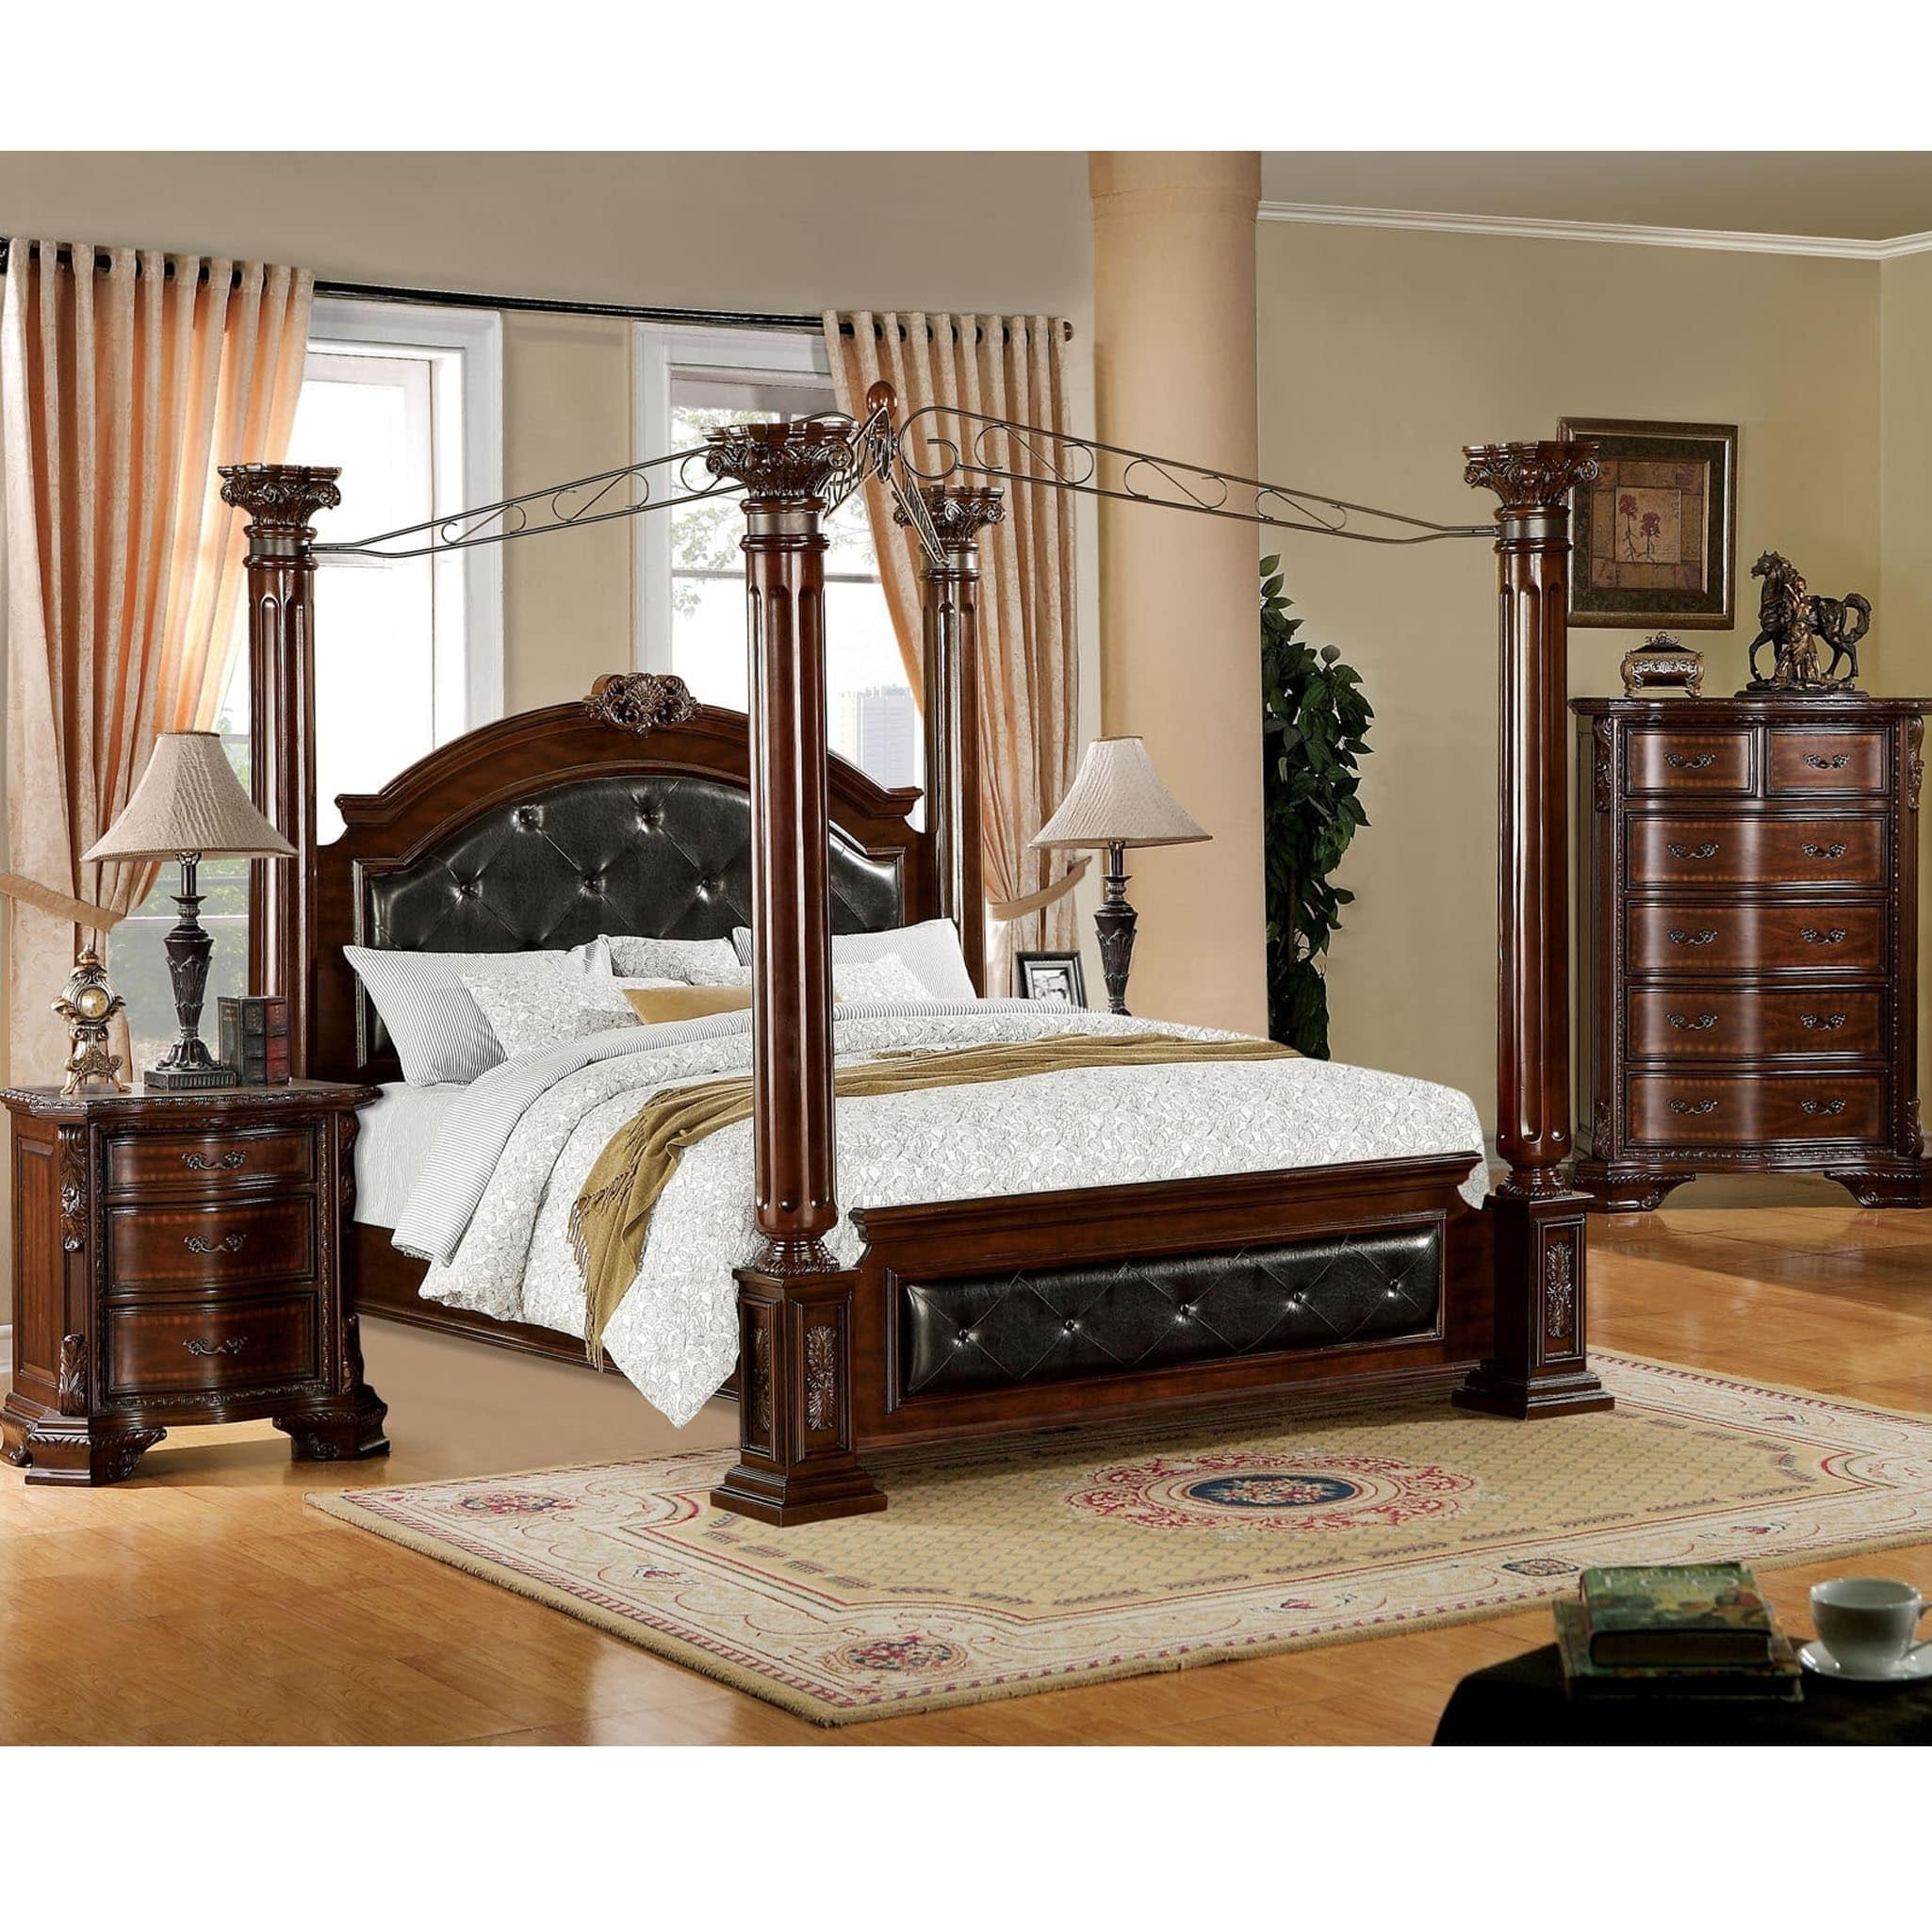 Furniture Of America Cane Traditional Cherry Solid Wood Canopy Bed On Sale Overstock 9216407